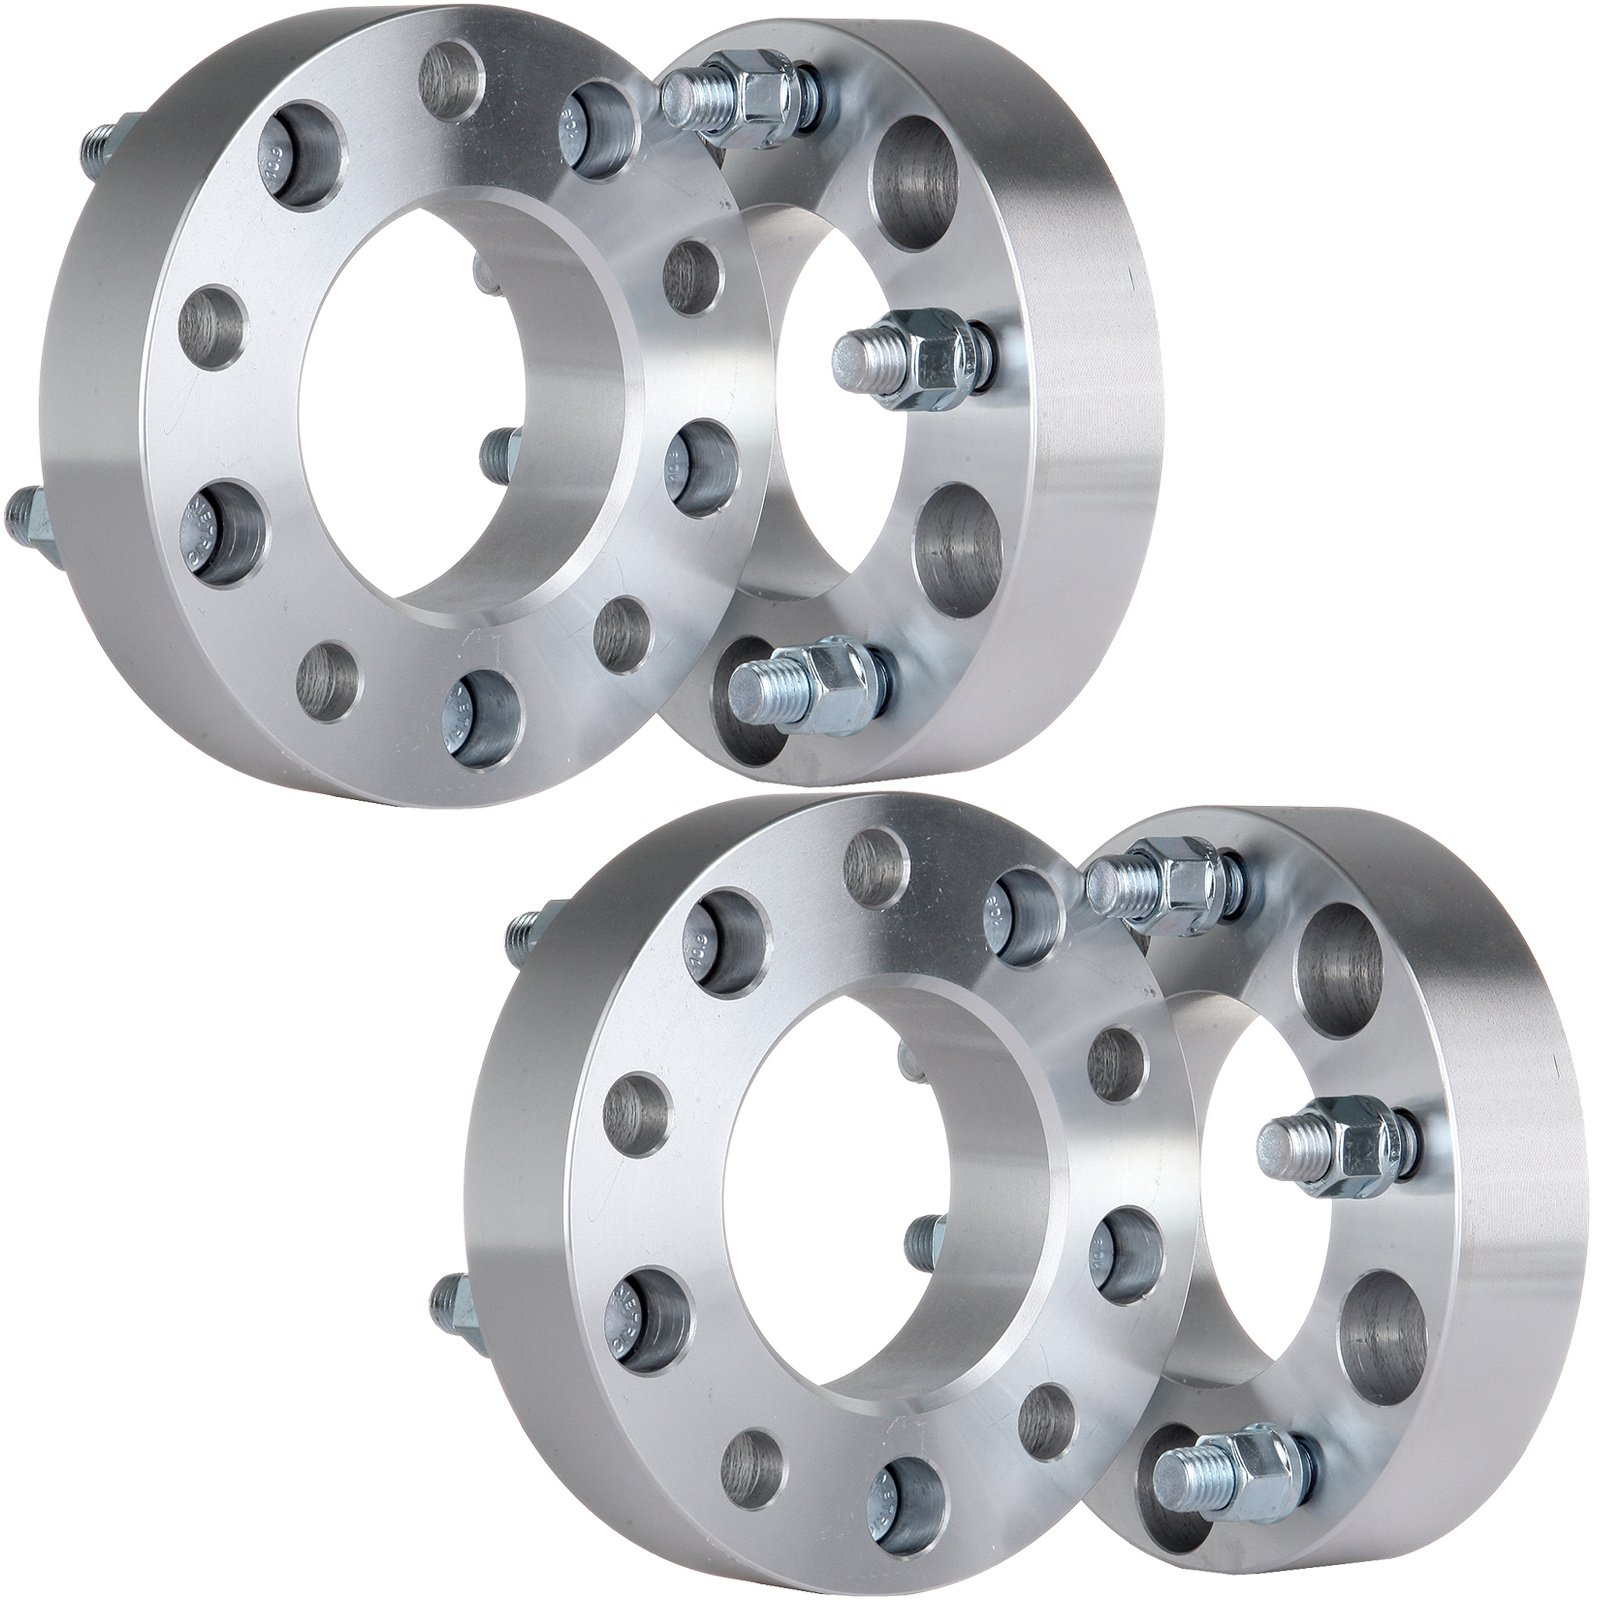 ECCPP Wheel Spacers 4PCS 5Lug 1.5'' Thick 5x135 to 5x135 1998 1999 2000 2001 2002 Ford Expedition F-150 Lincoln Navigator Wheel Spacer 14x2 Studs by ECCPP (Image #2)